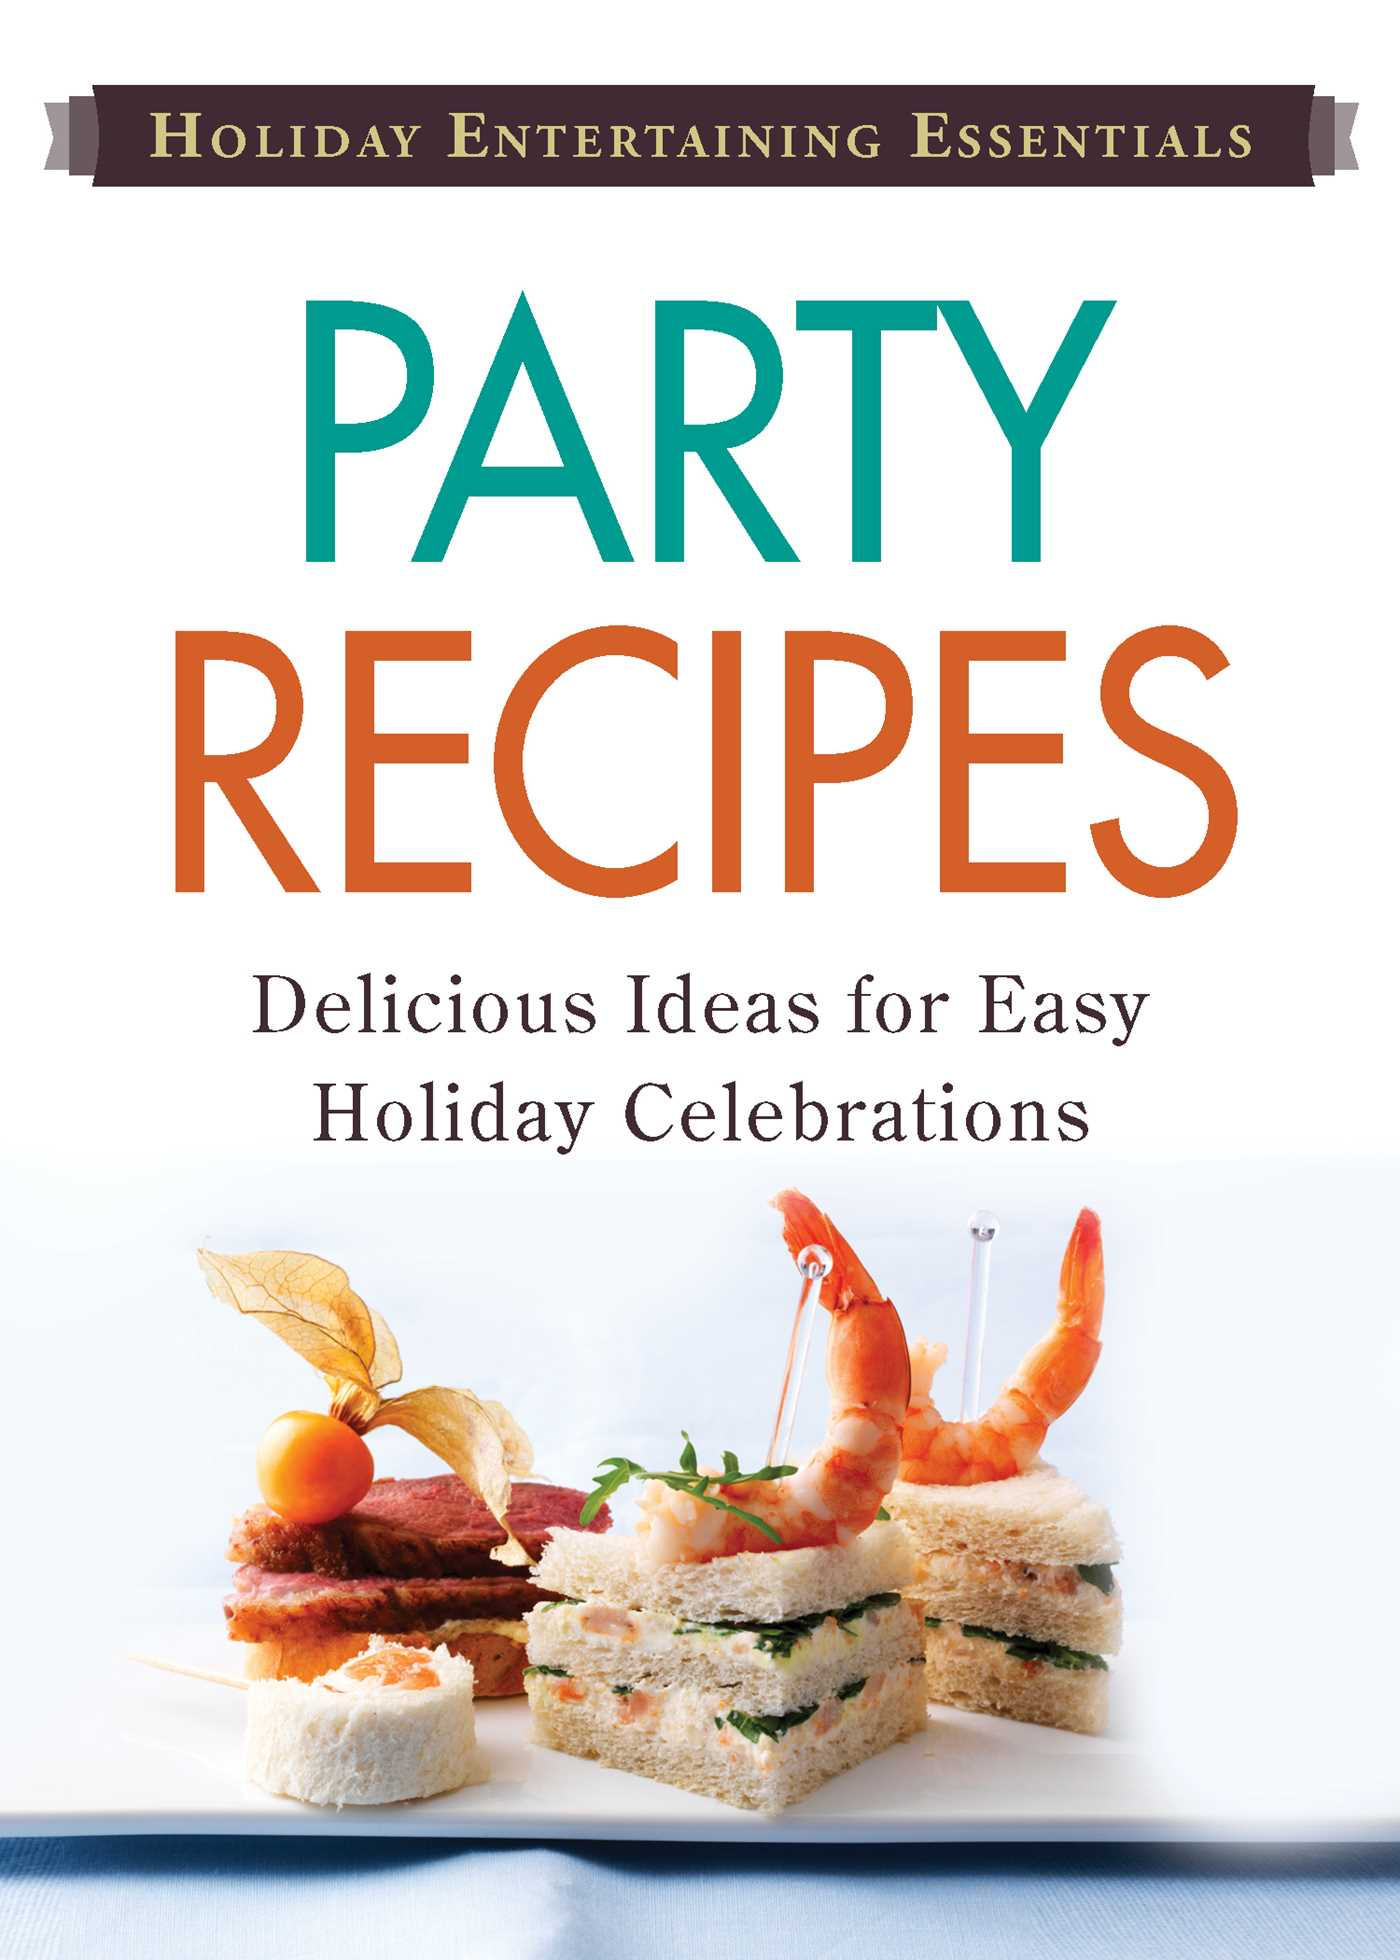 Holiday Entertaining Essentials: Party Recipes Delicious ideas for easy holiday celebrations